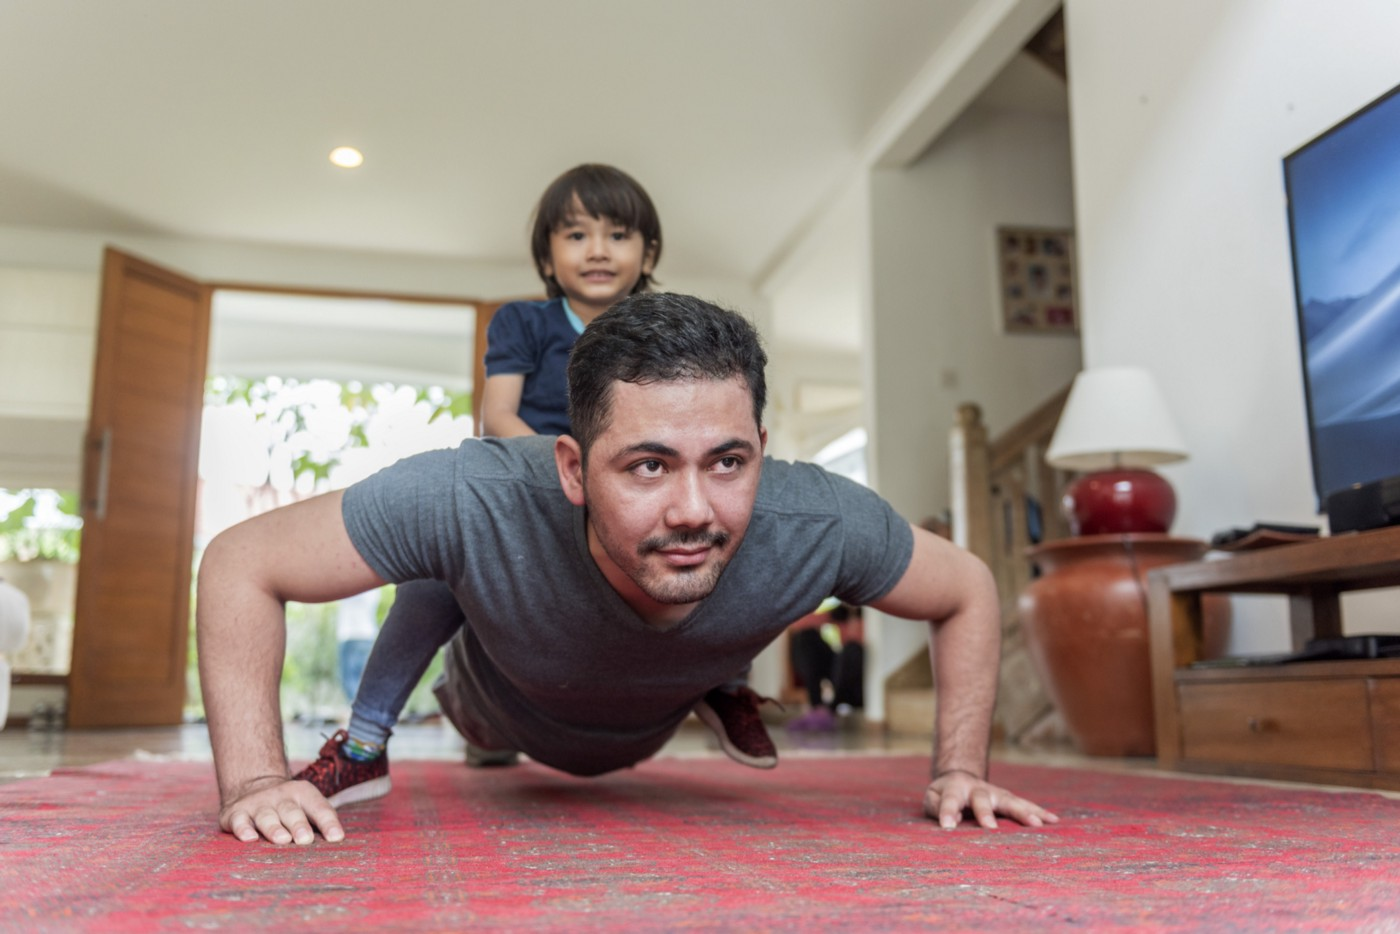 A photo of a father doing push ups in the living room while his son sits on his back.